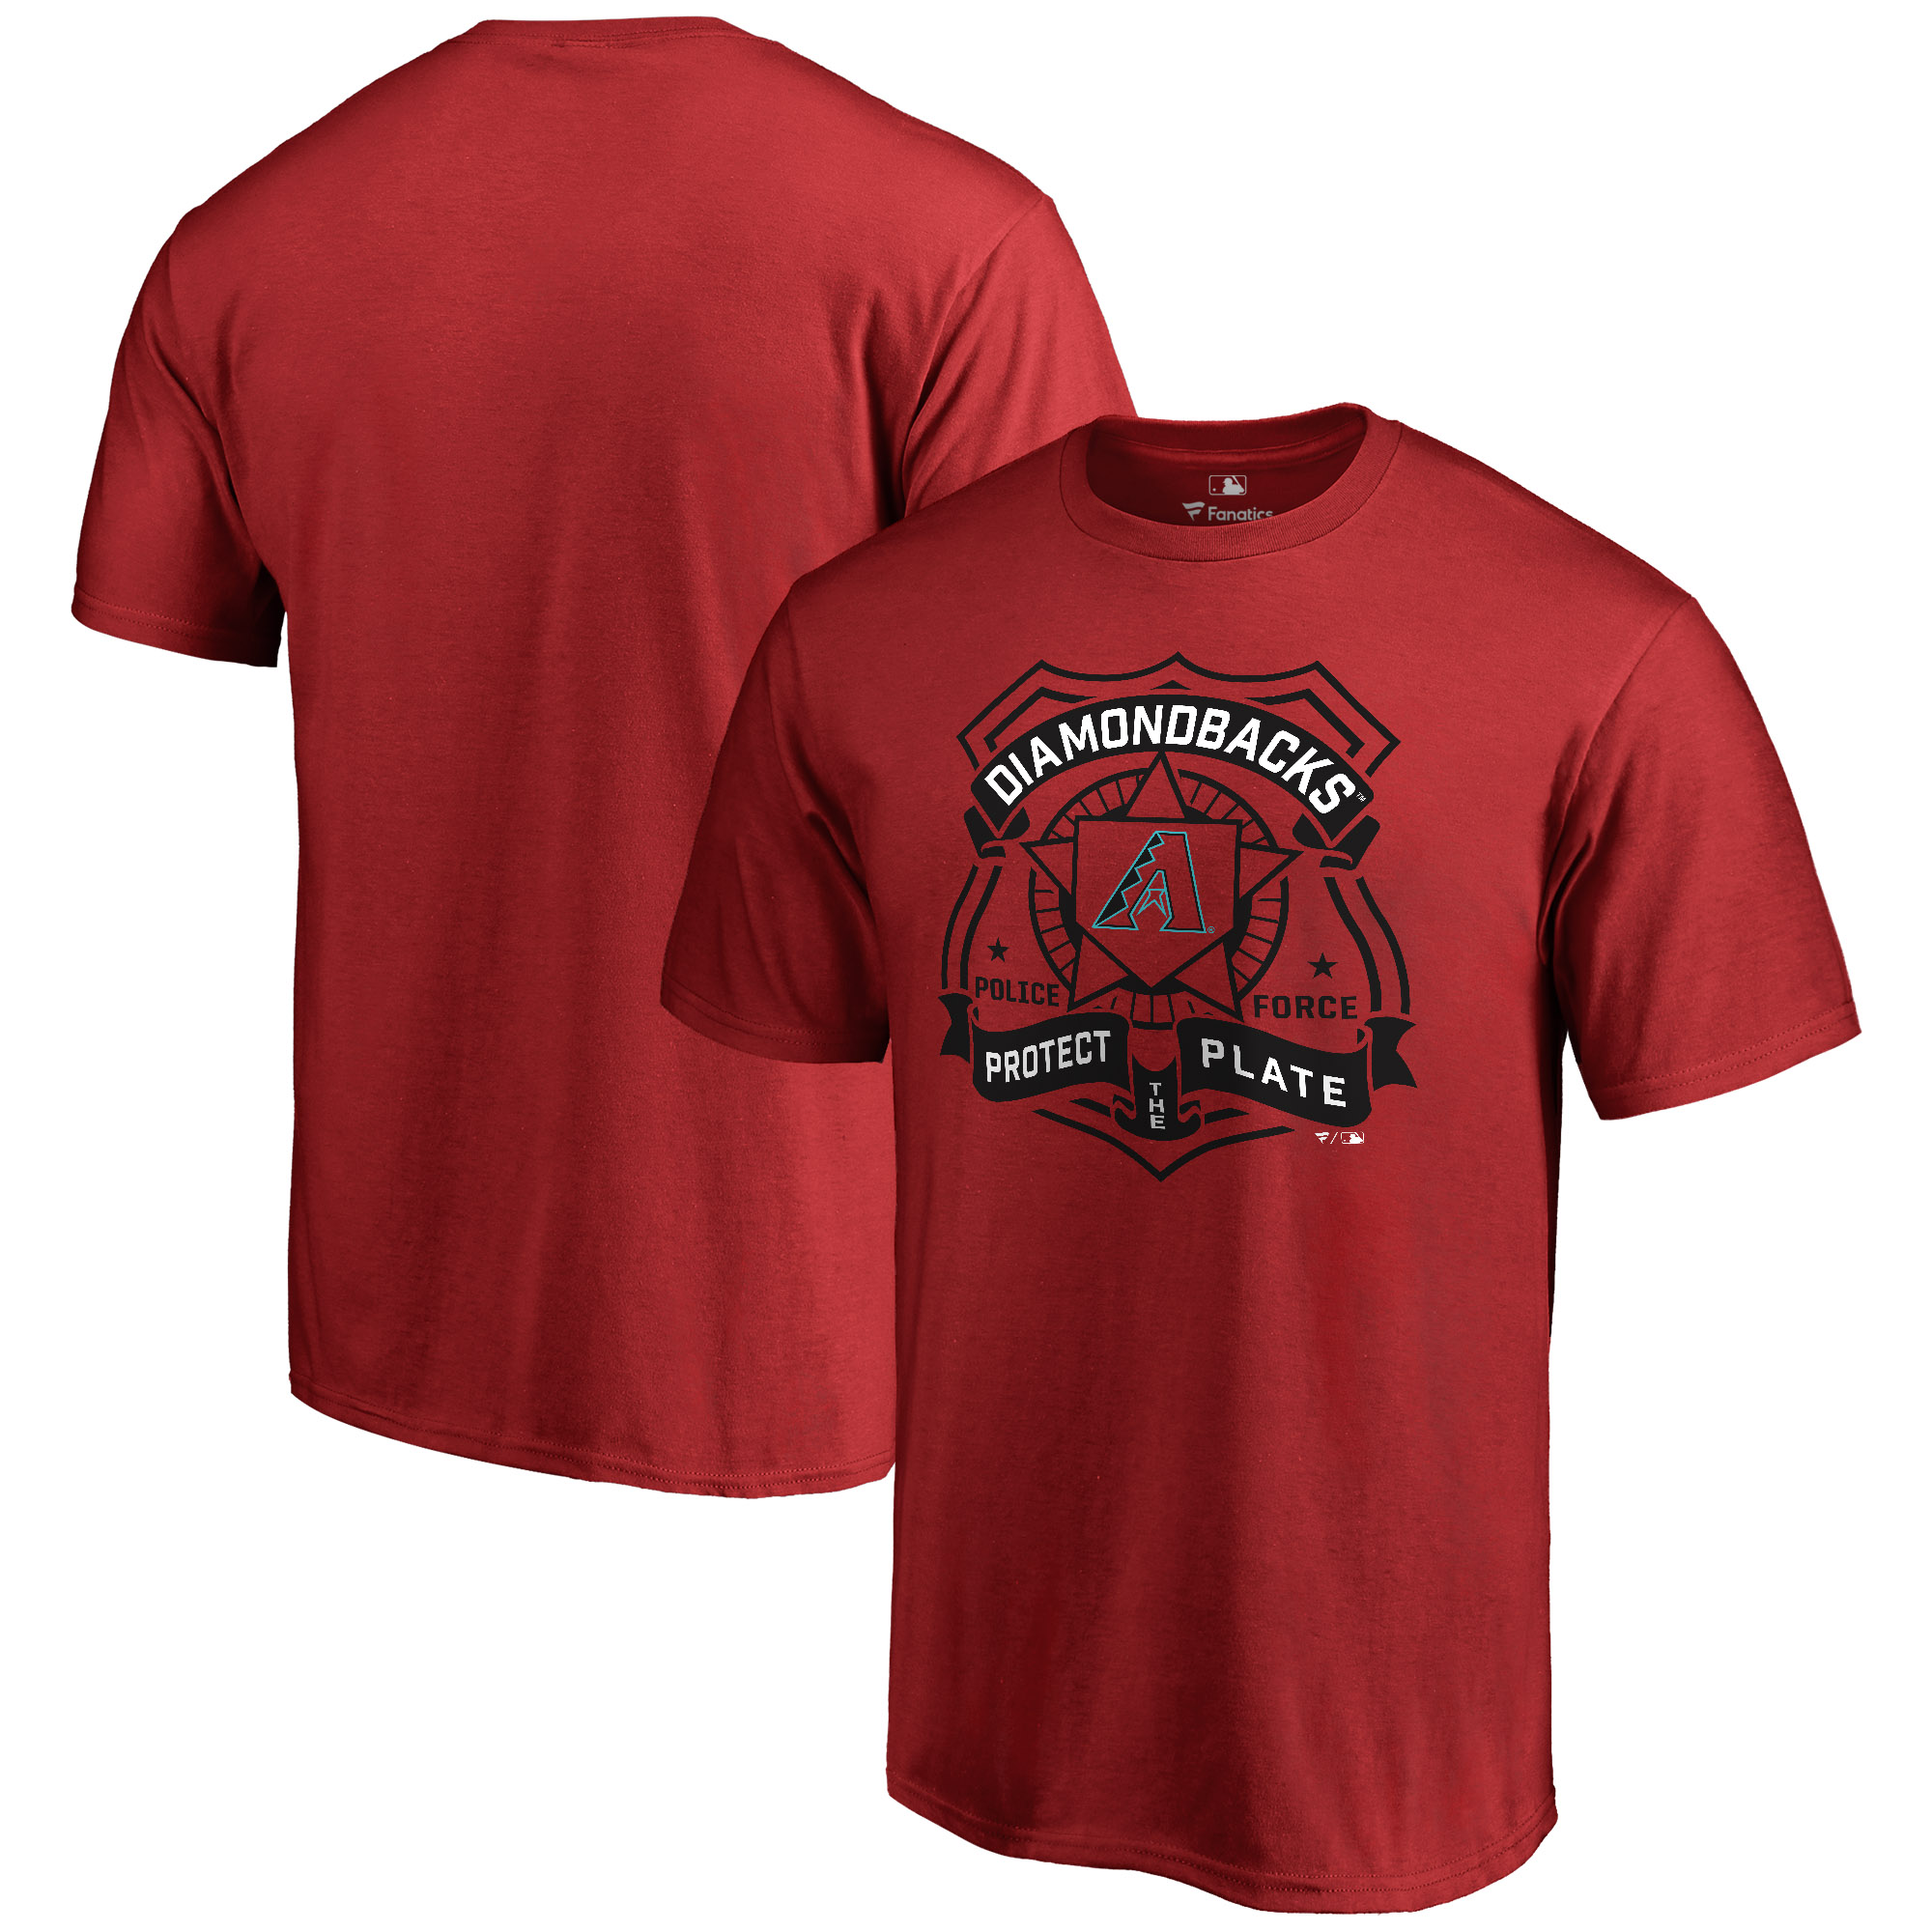 Arizona Diamondbacks Police Badge T-Shirt - Red